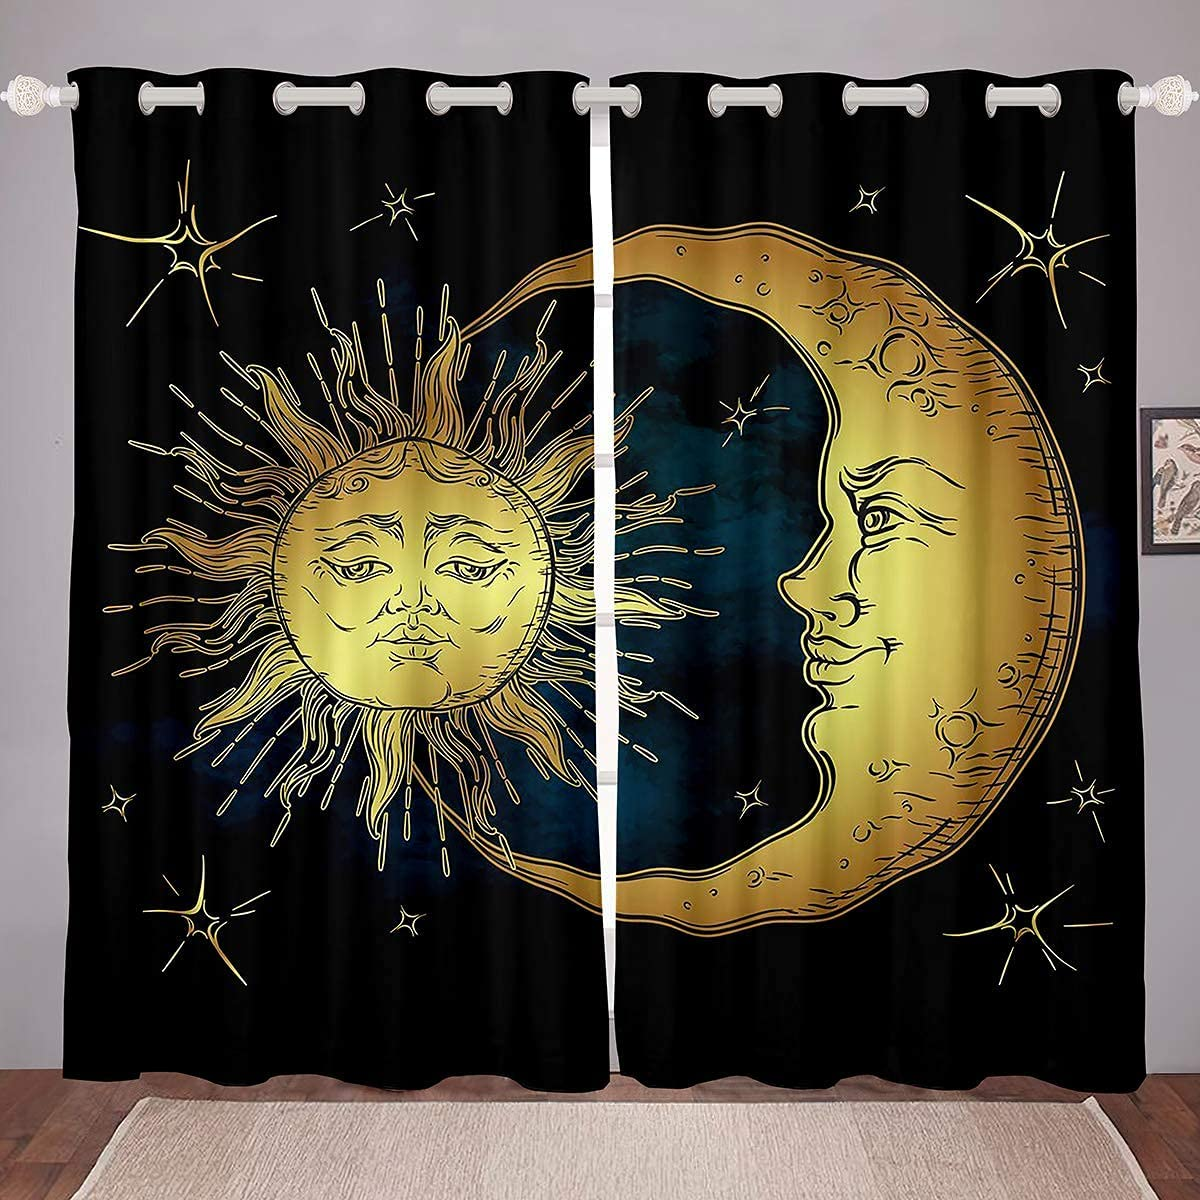 JOOCAR Sun and Moon Boho Grommet Max 41% OFF Insula Blackout Houston Mall Curtains Exotic